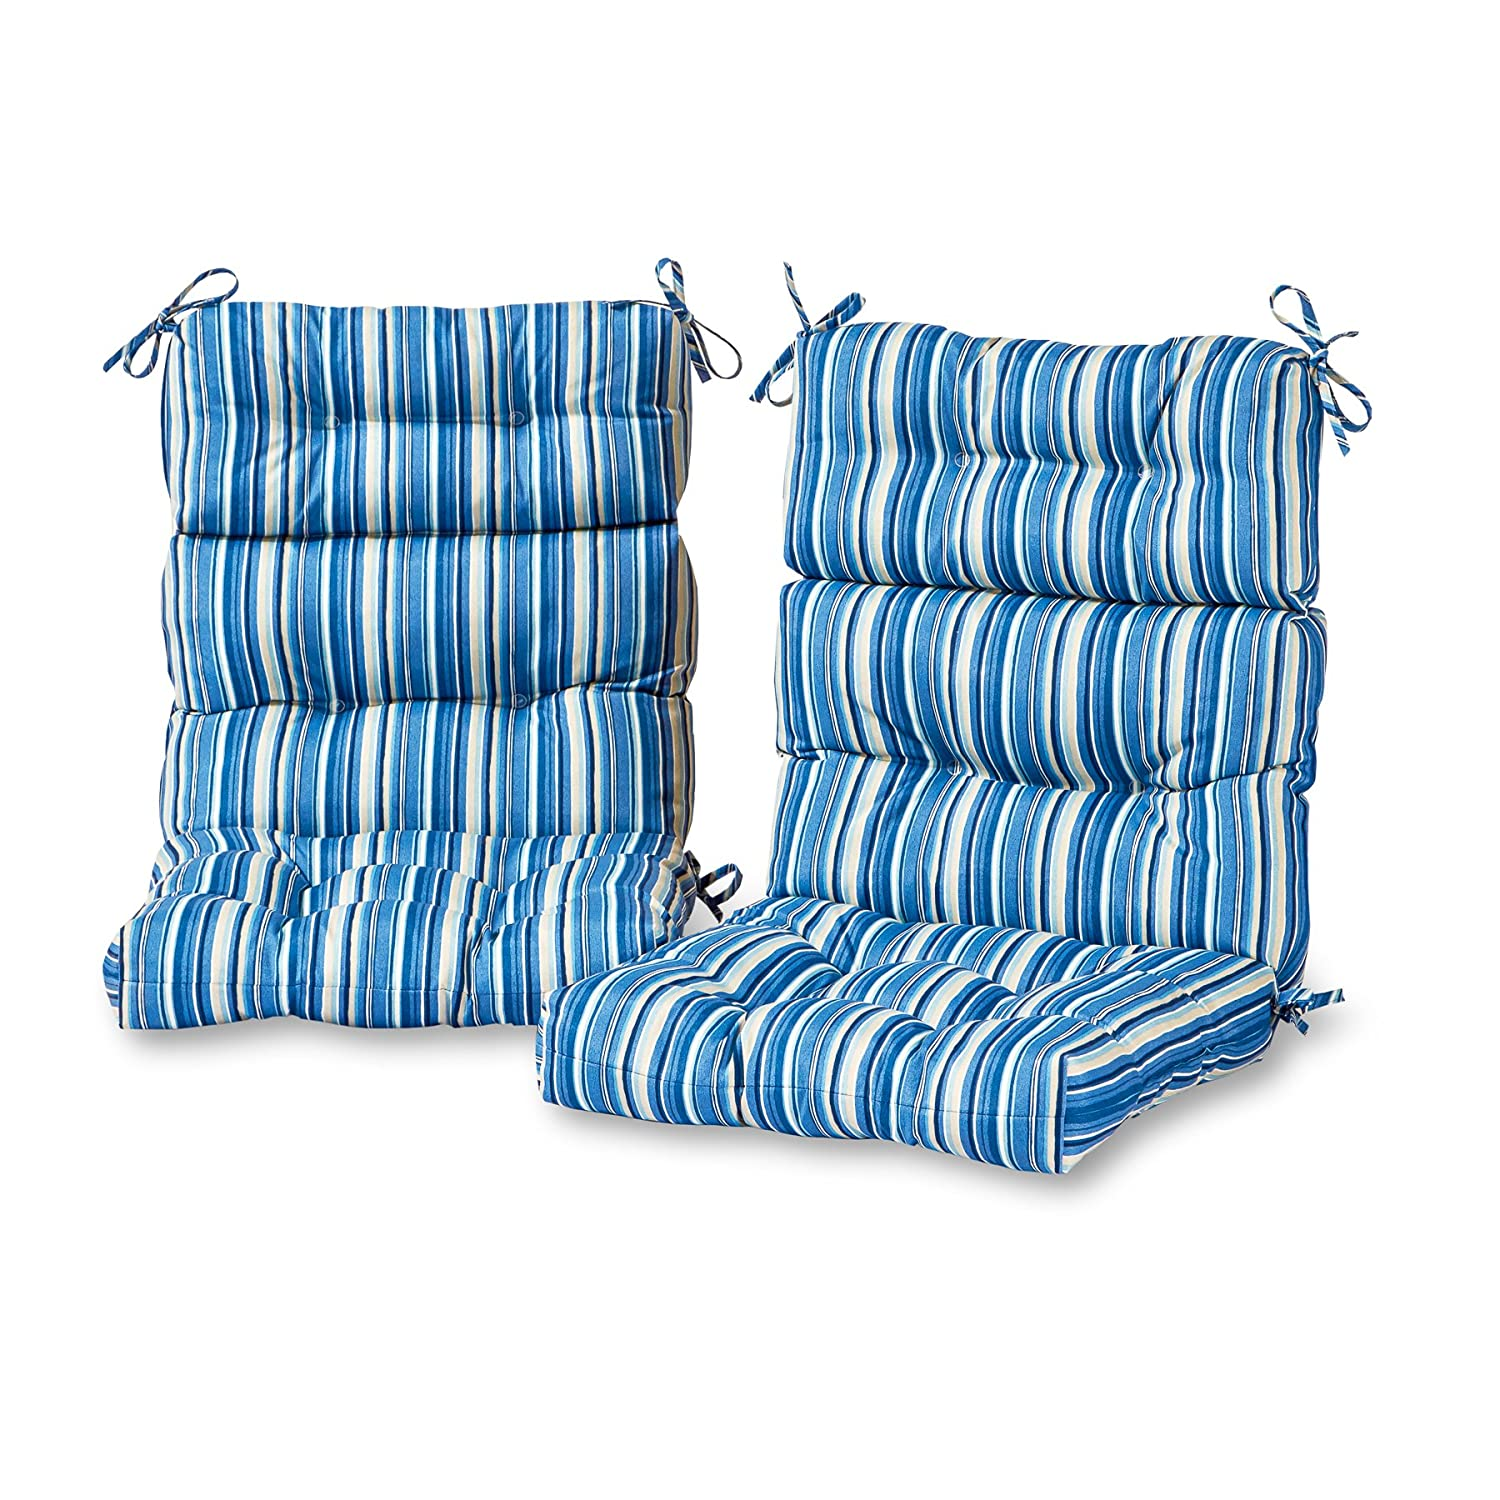 Greendale Home Fashions Outdoor High Back Chair Cushion in Coastal Stripe set of 2 , Sapphire